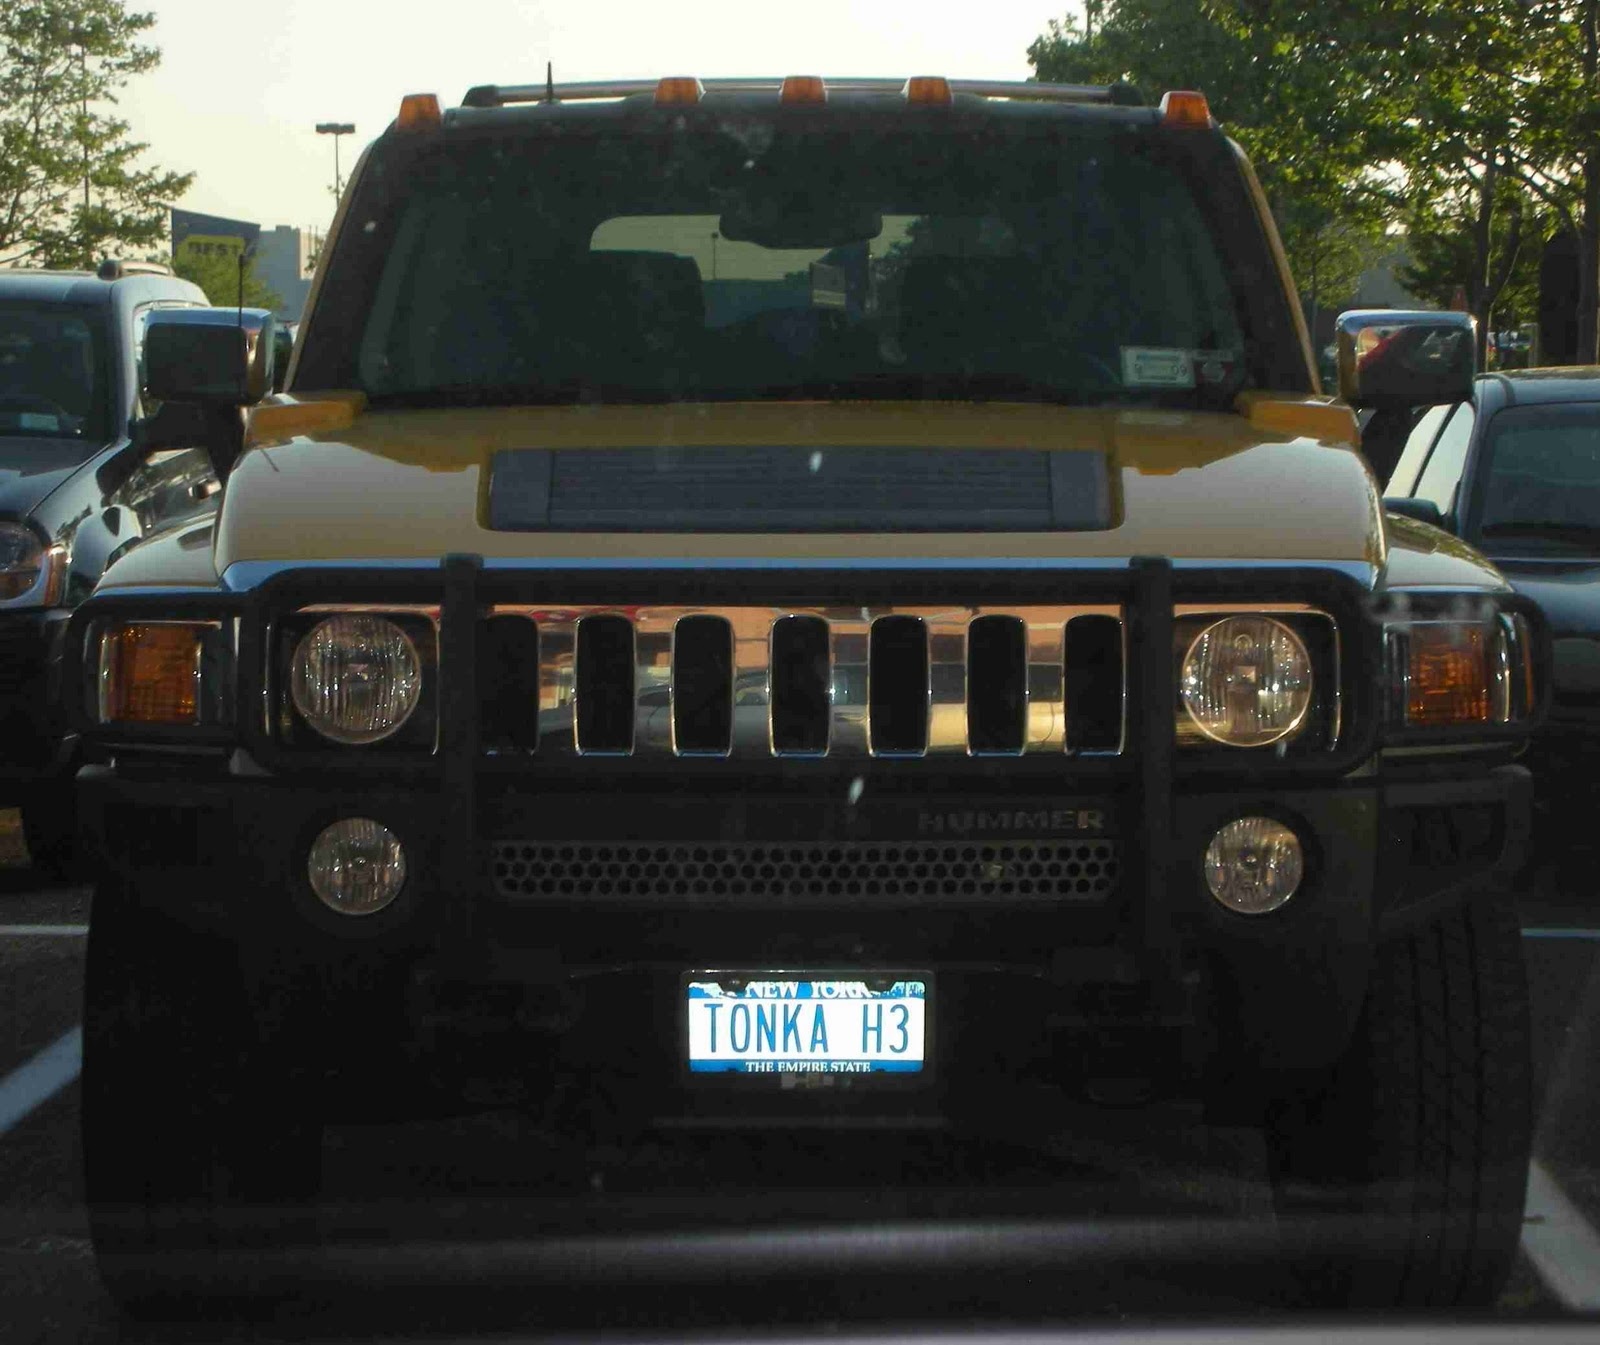 Funny License Plates TONKA H3 So you re telling me your Hummer